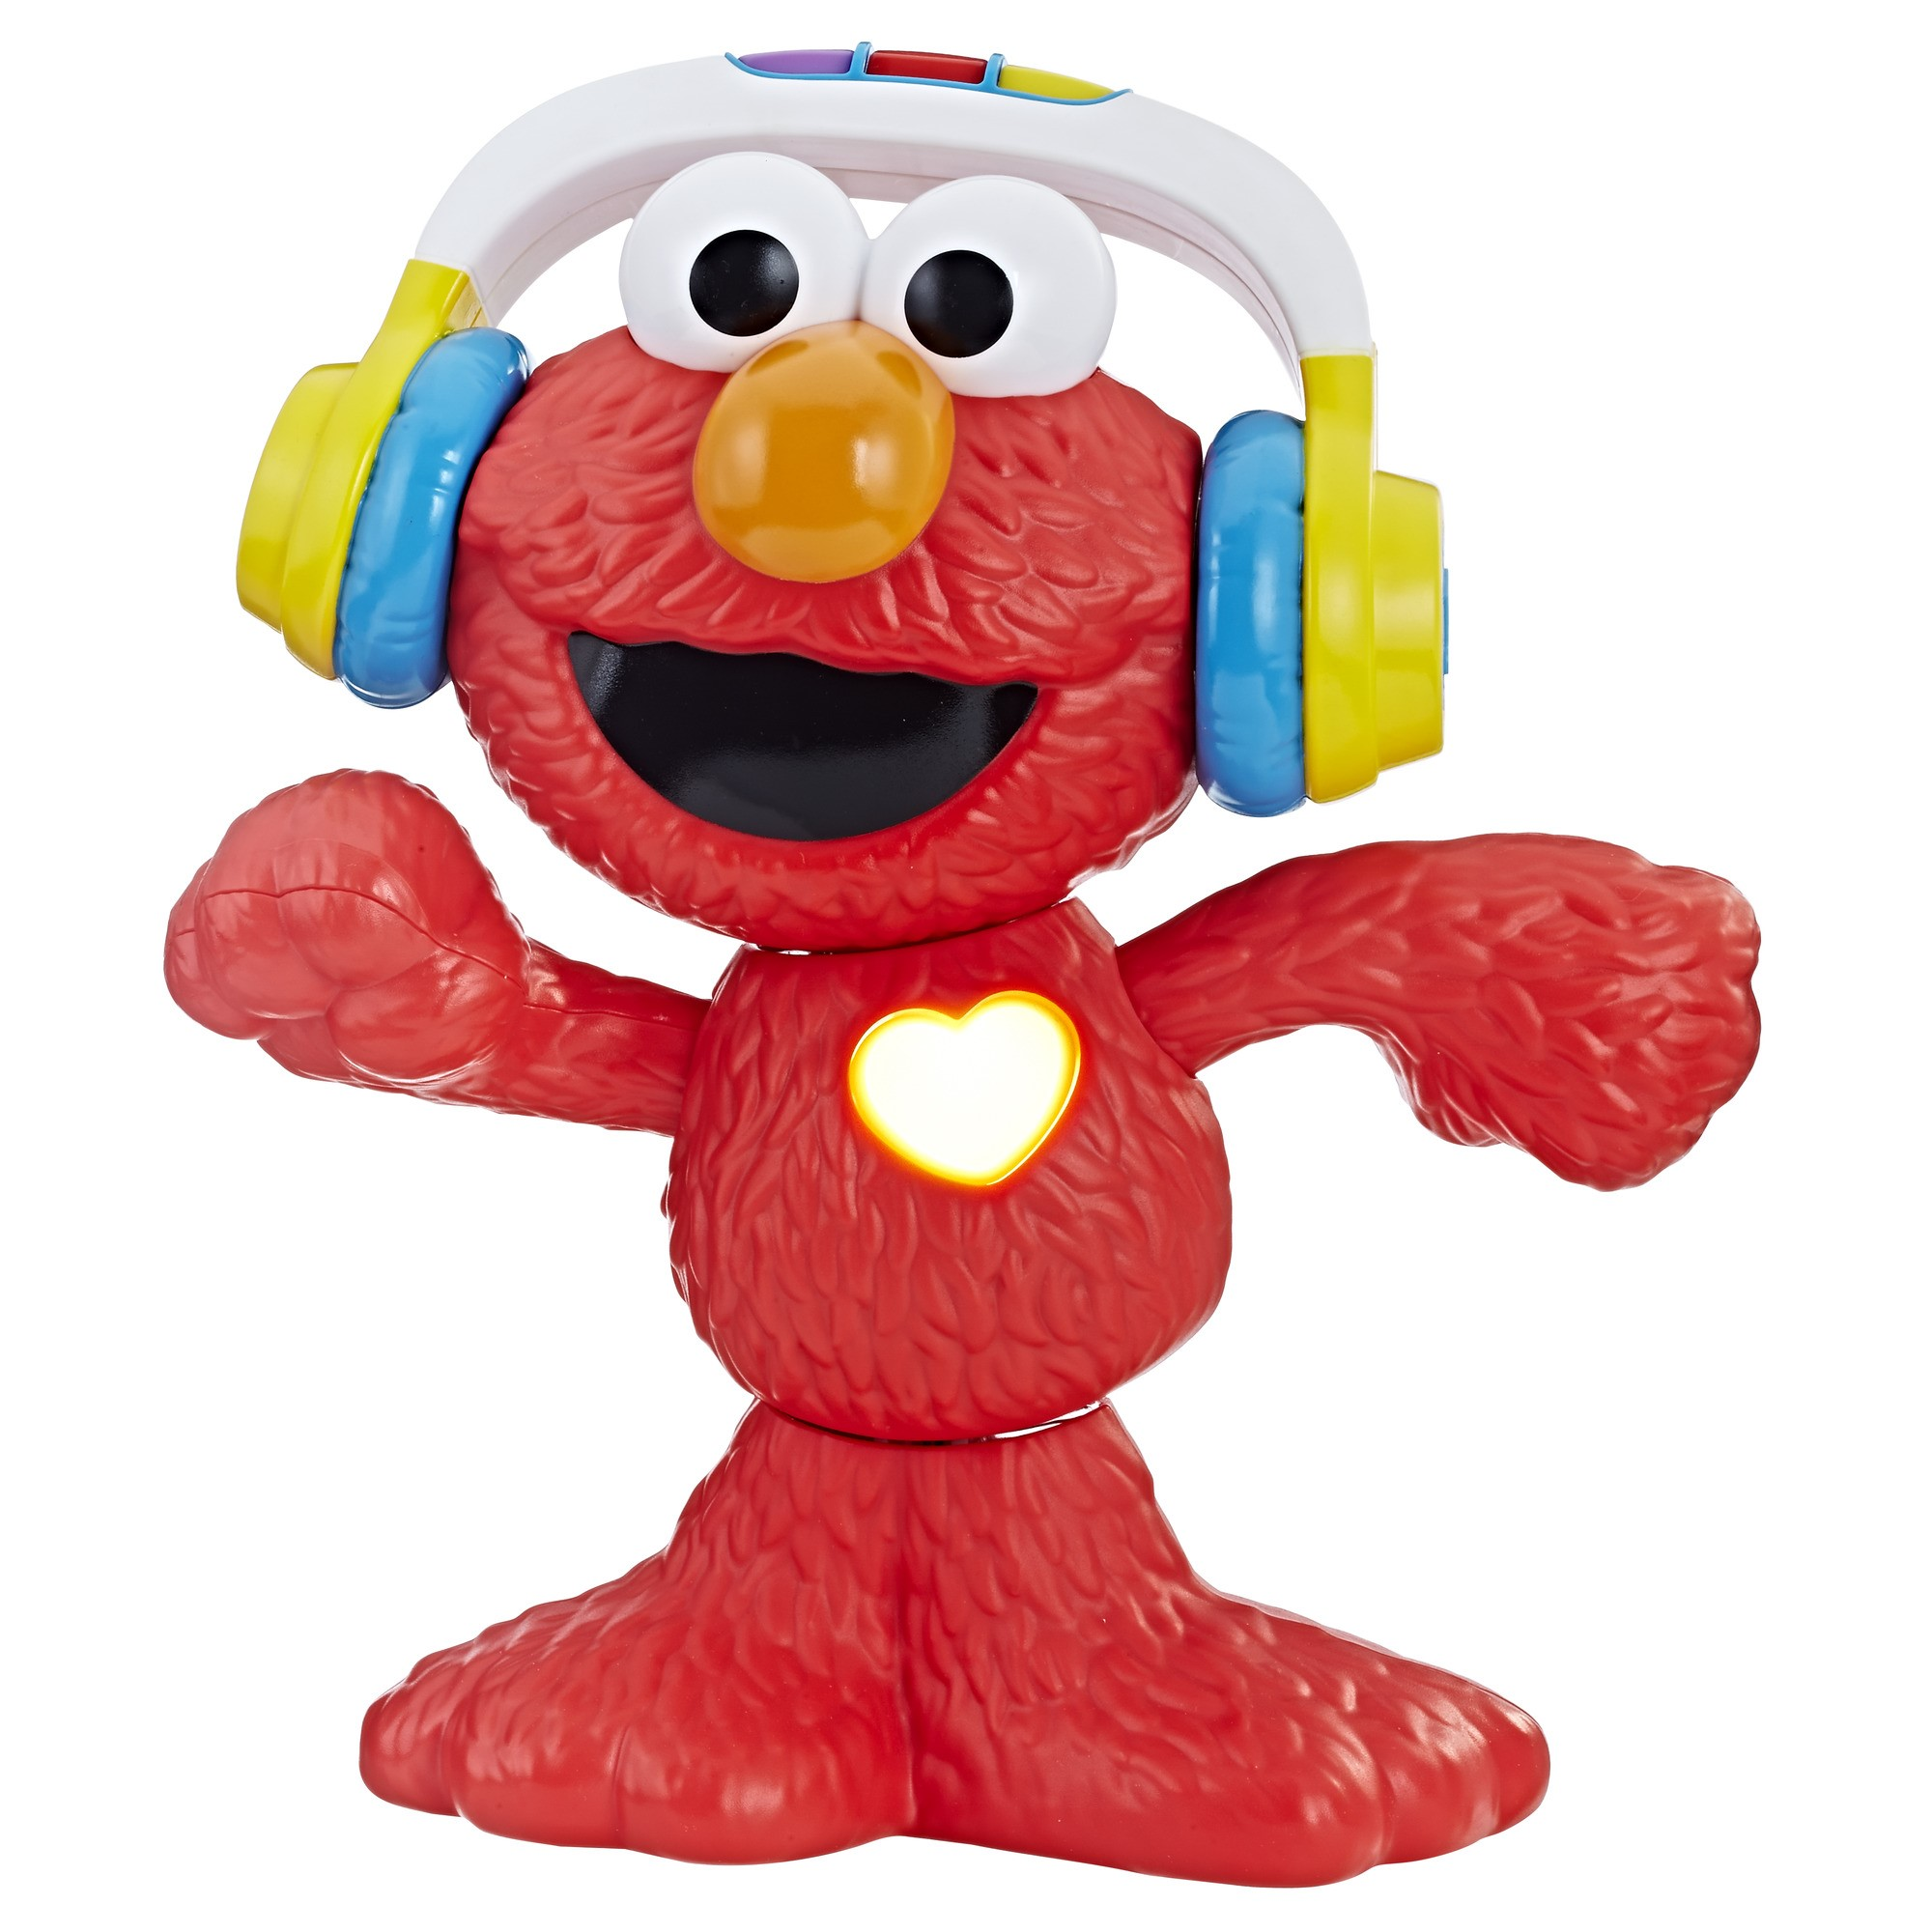 Sesame street let's dance elmo: 12-inch elmo toy that sings and dances